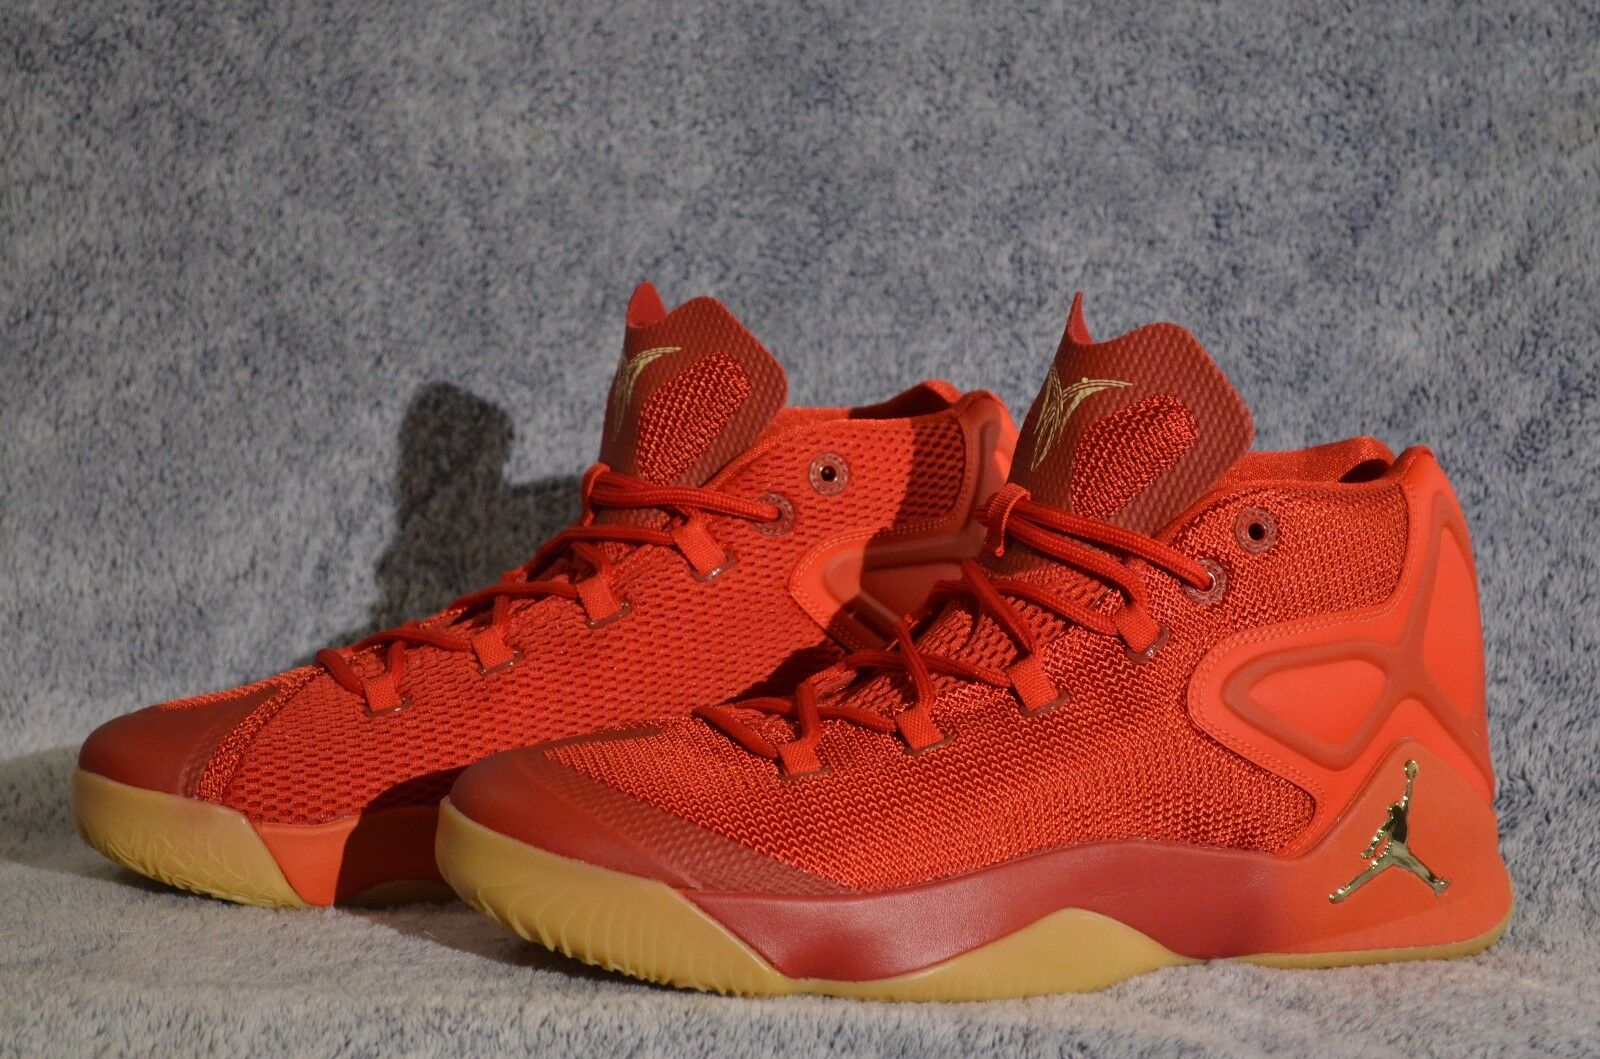 Nike Jordan Brand Carmelo Anthony M12 – Size 11.5 – Red/Gum – NWOB